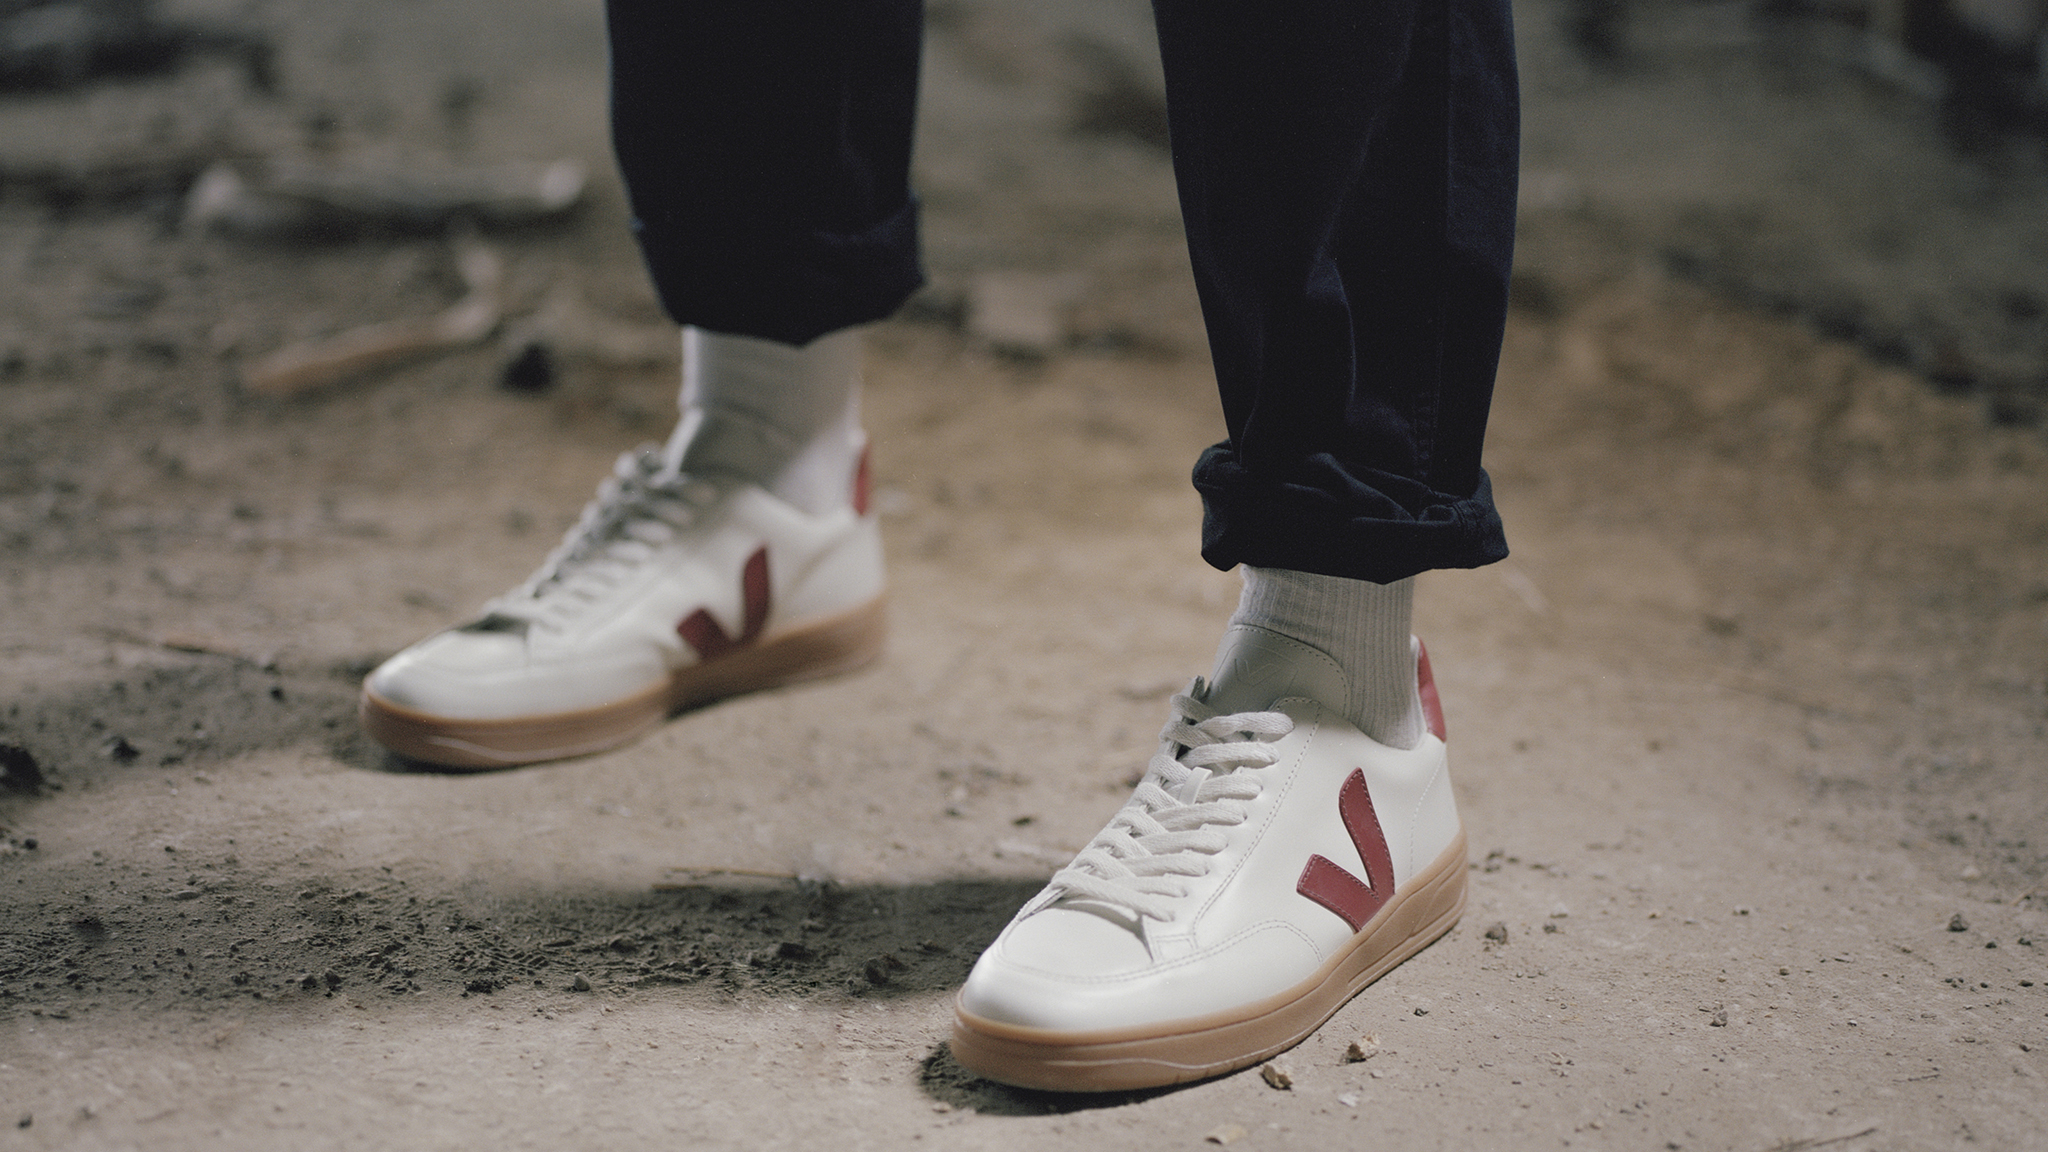 Sandalias crisantemo Frente a ti  How sustainable sneaker brand Veja went viral | Financial Times